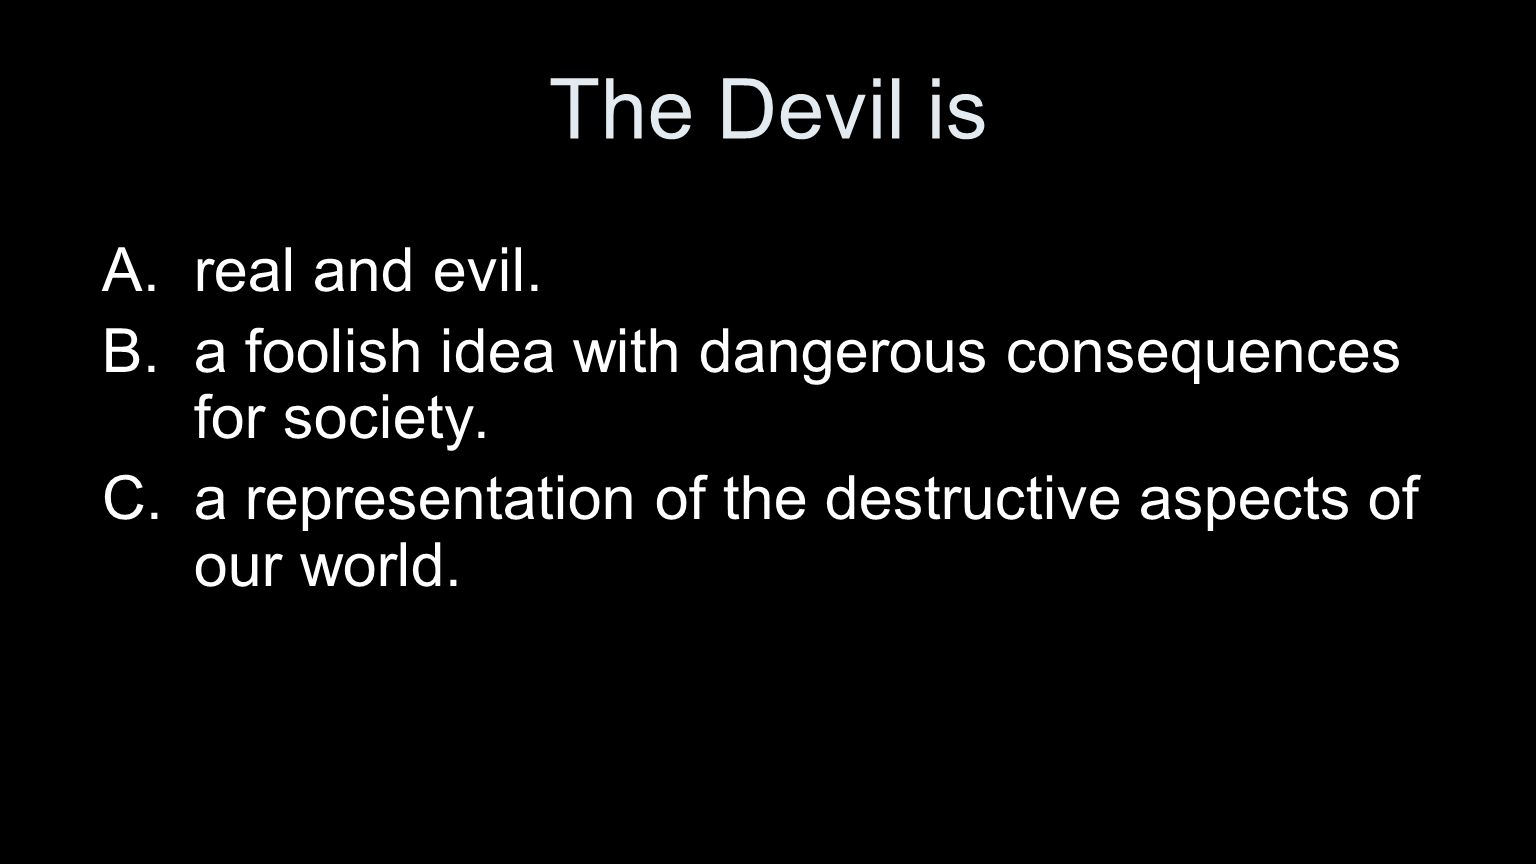 The Devil is A.real and evil. B.a foolish idea with dangerous consequences for society. C.a representation of the destructive aspects of our world.